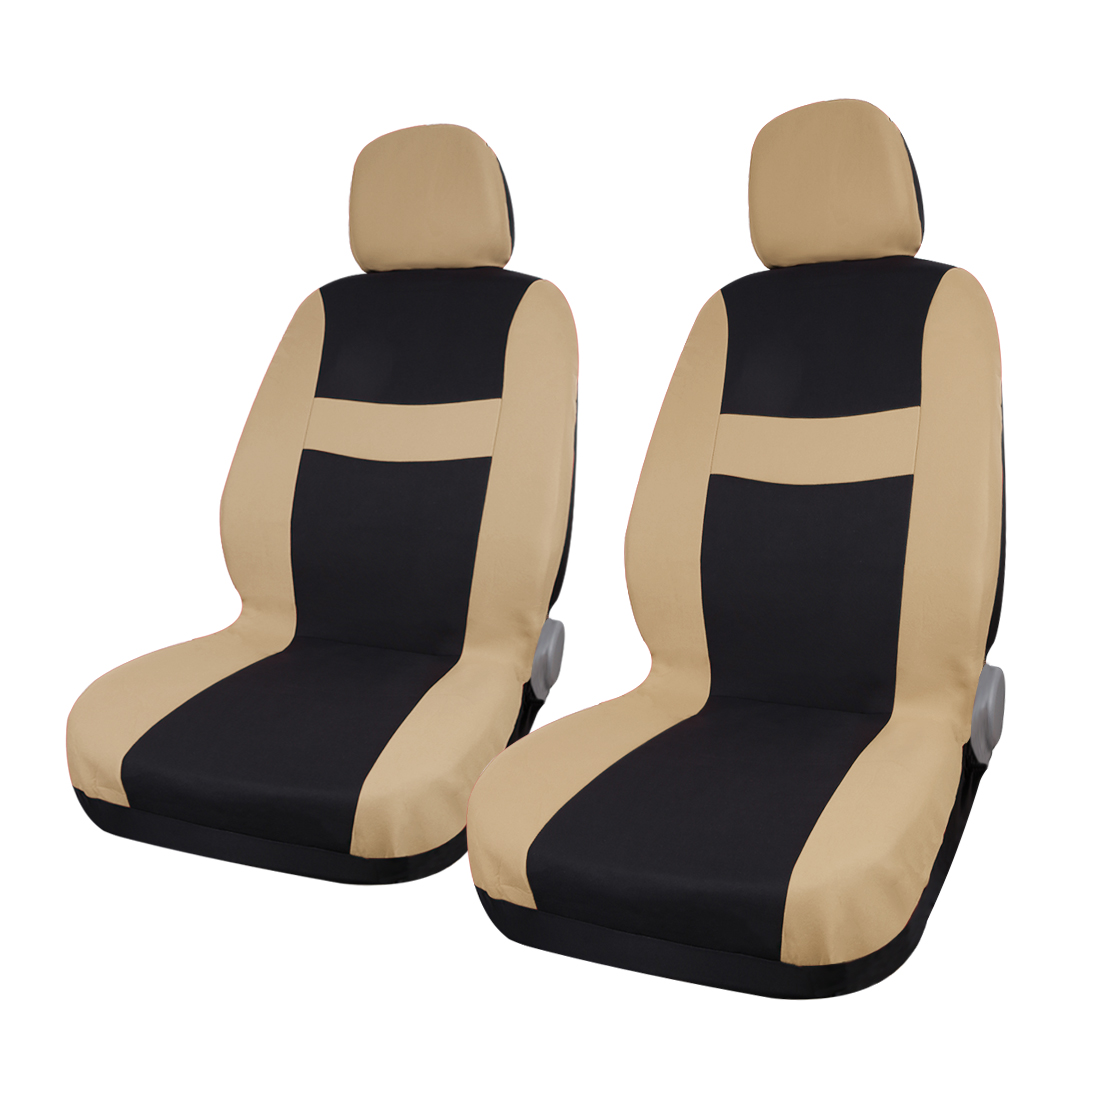 8 piece Beige Black Car Seat Covers with Headrest for Auto Truck